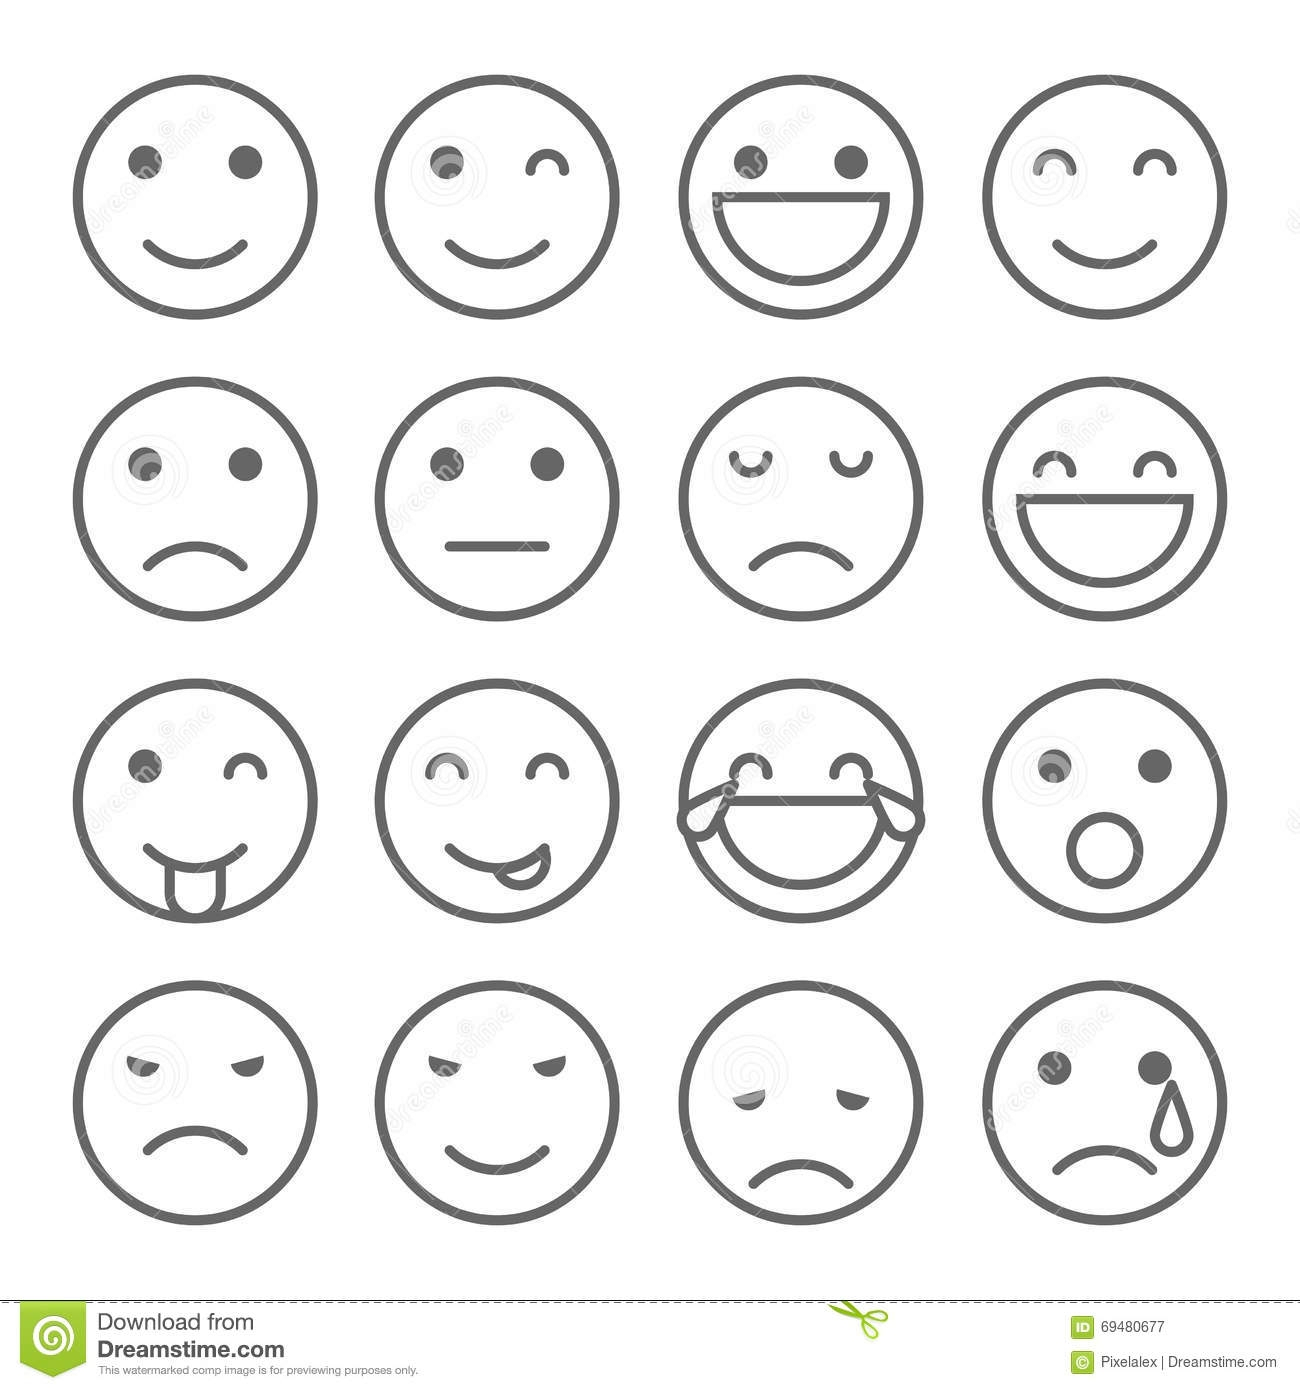 poop coloring pages - stock illustration emoji faces simple icons set emoticons illustrations image